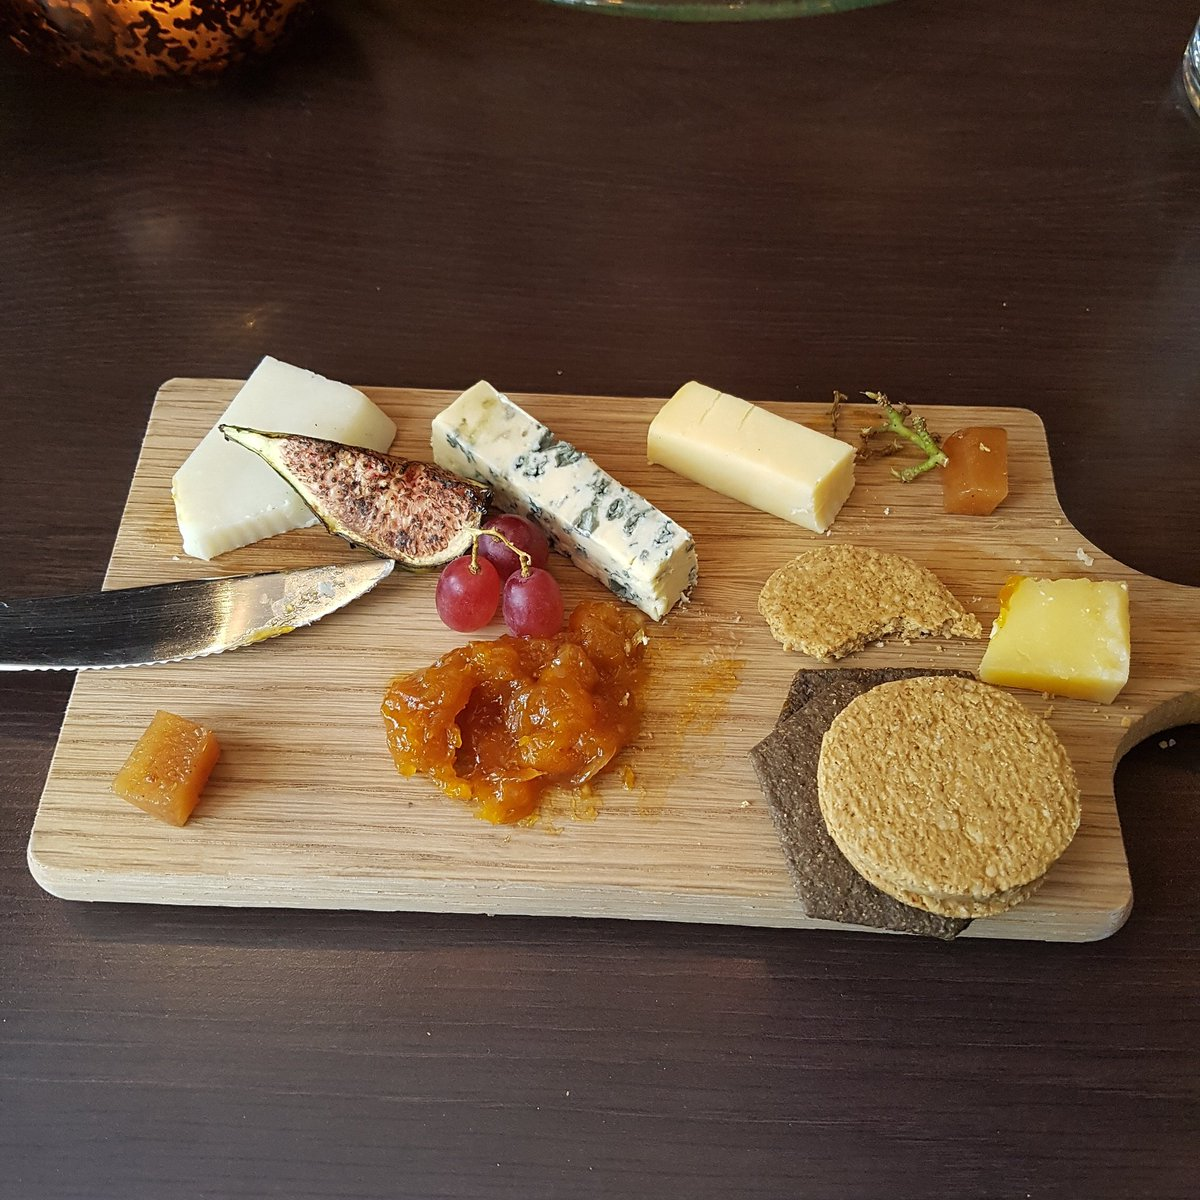 One for you @Knoxovic #cheeseboard <br>http://pic.twitter.com/fyLey2f9ll